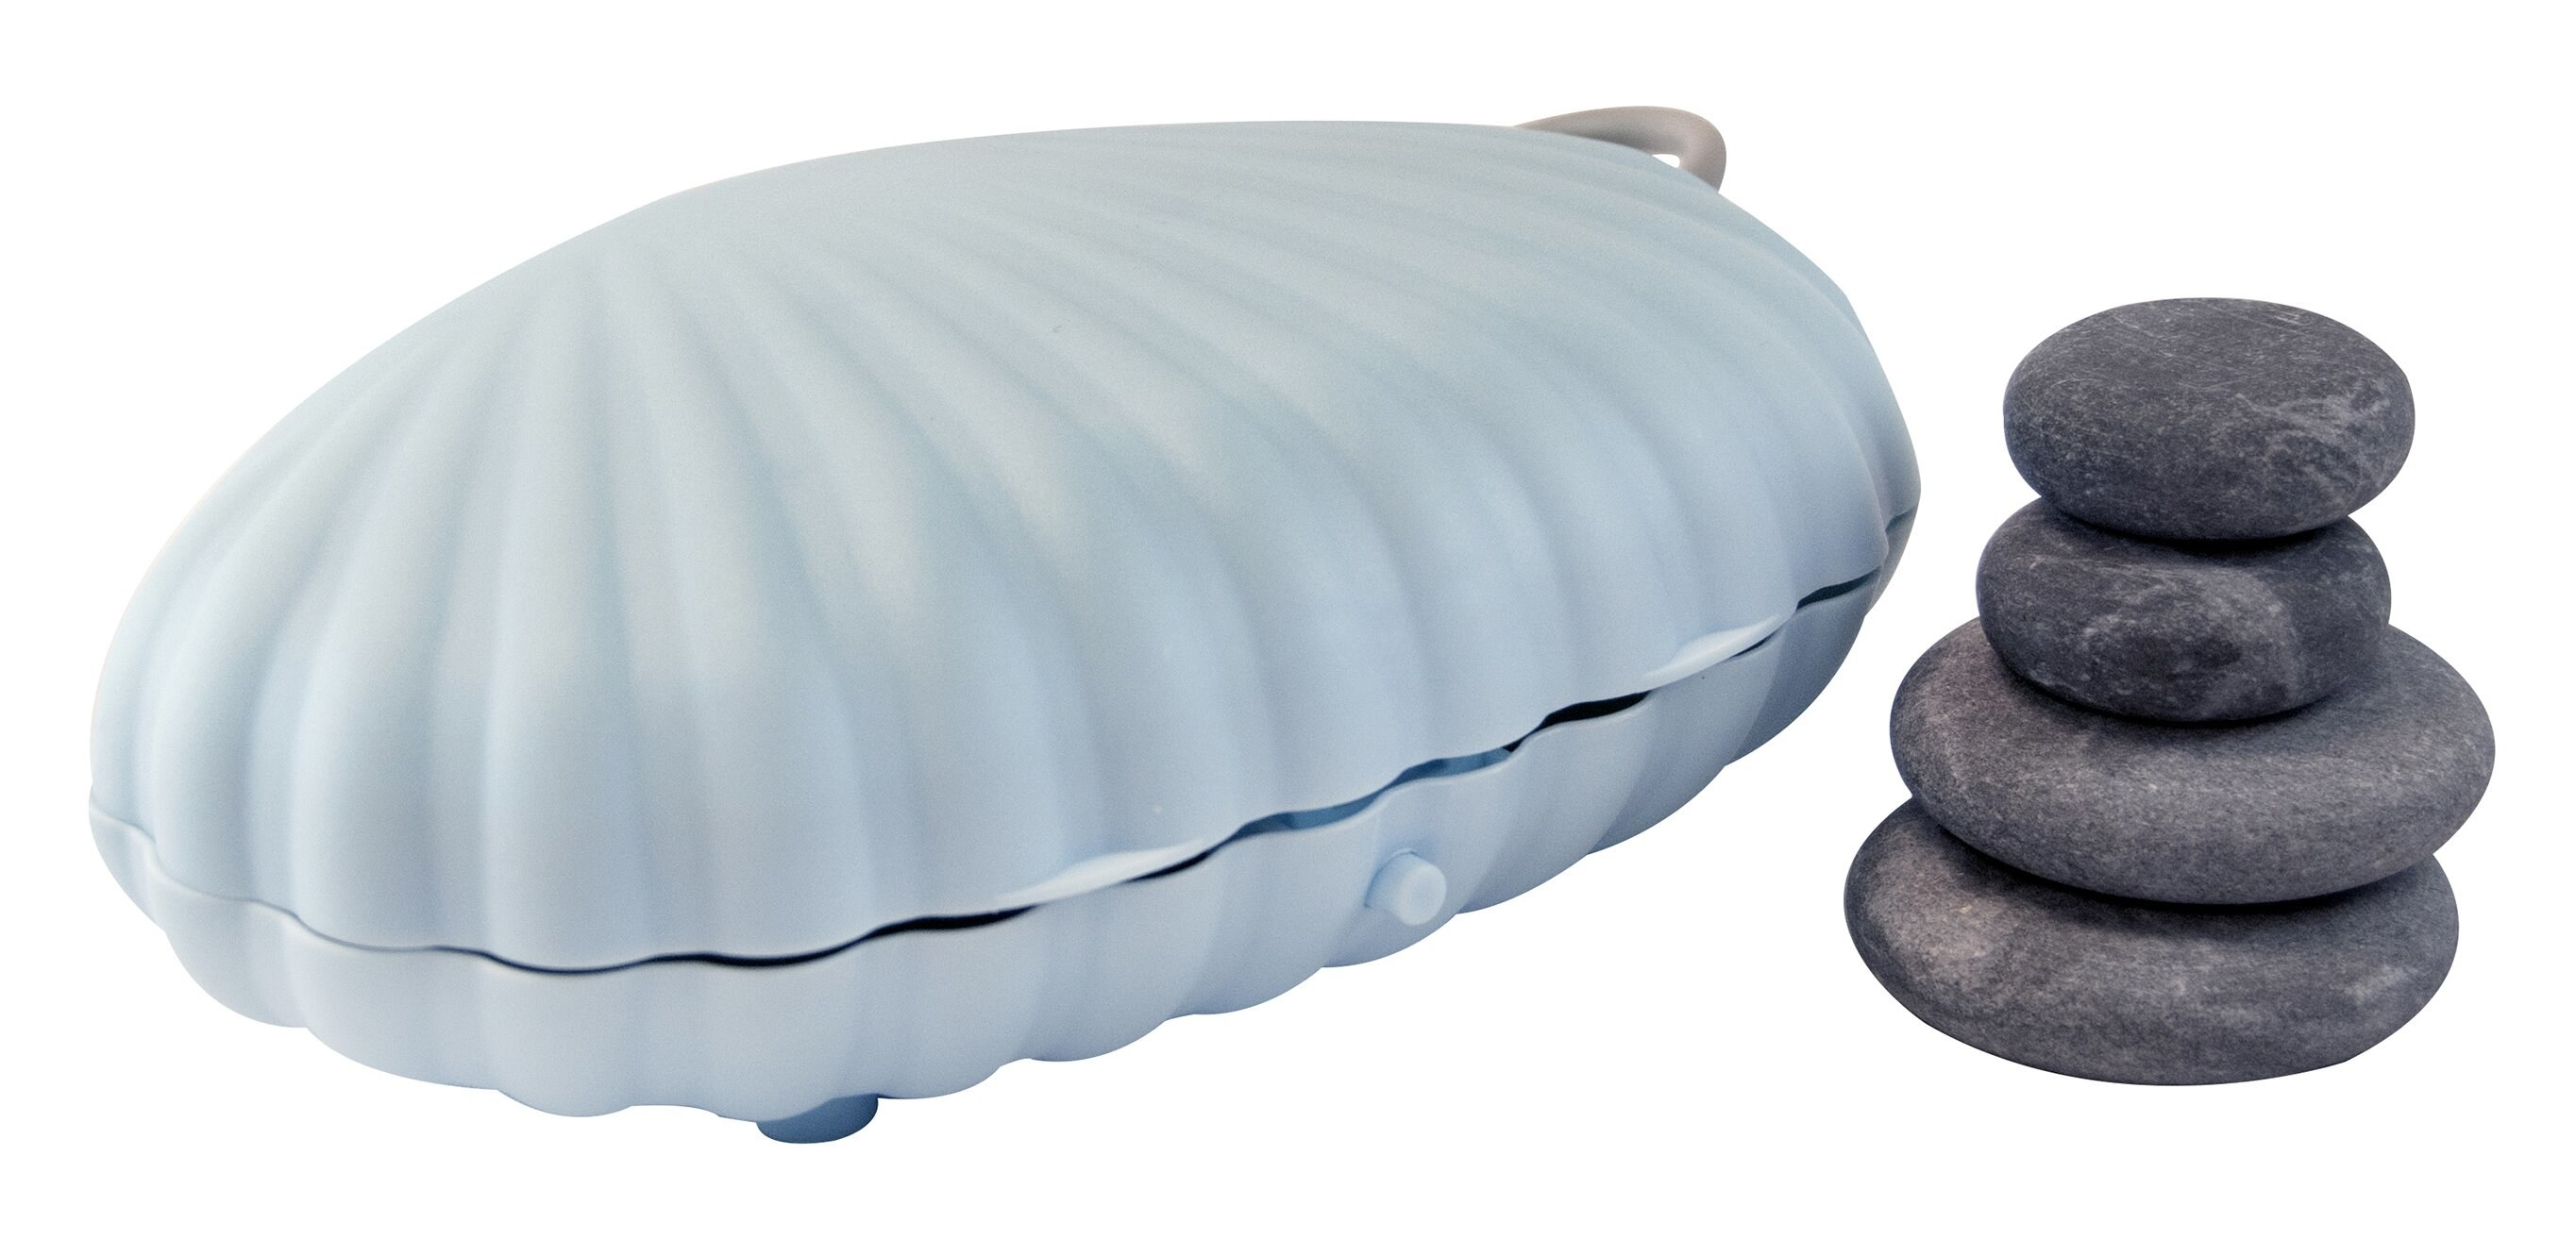 The four-piece stone kit which comes in a clamshell warmer